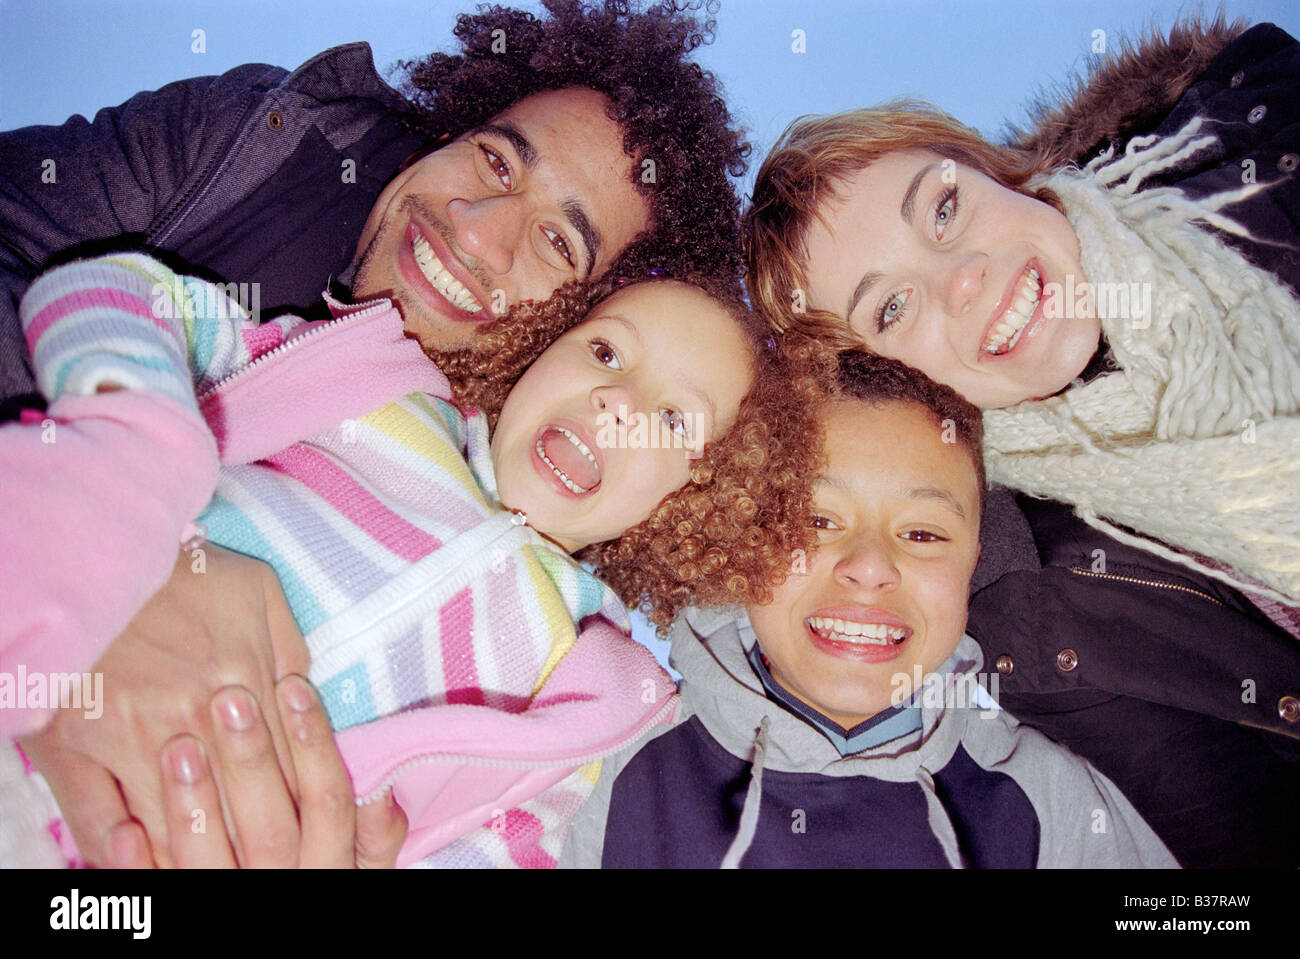 Portrait of young mixed race family taken from unusual angle with wide lens Stock Photo